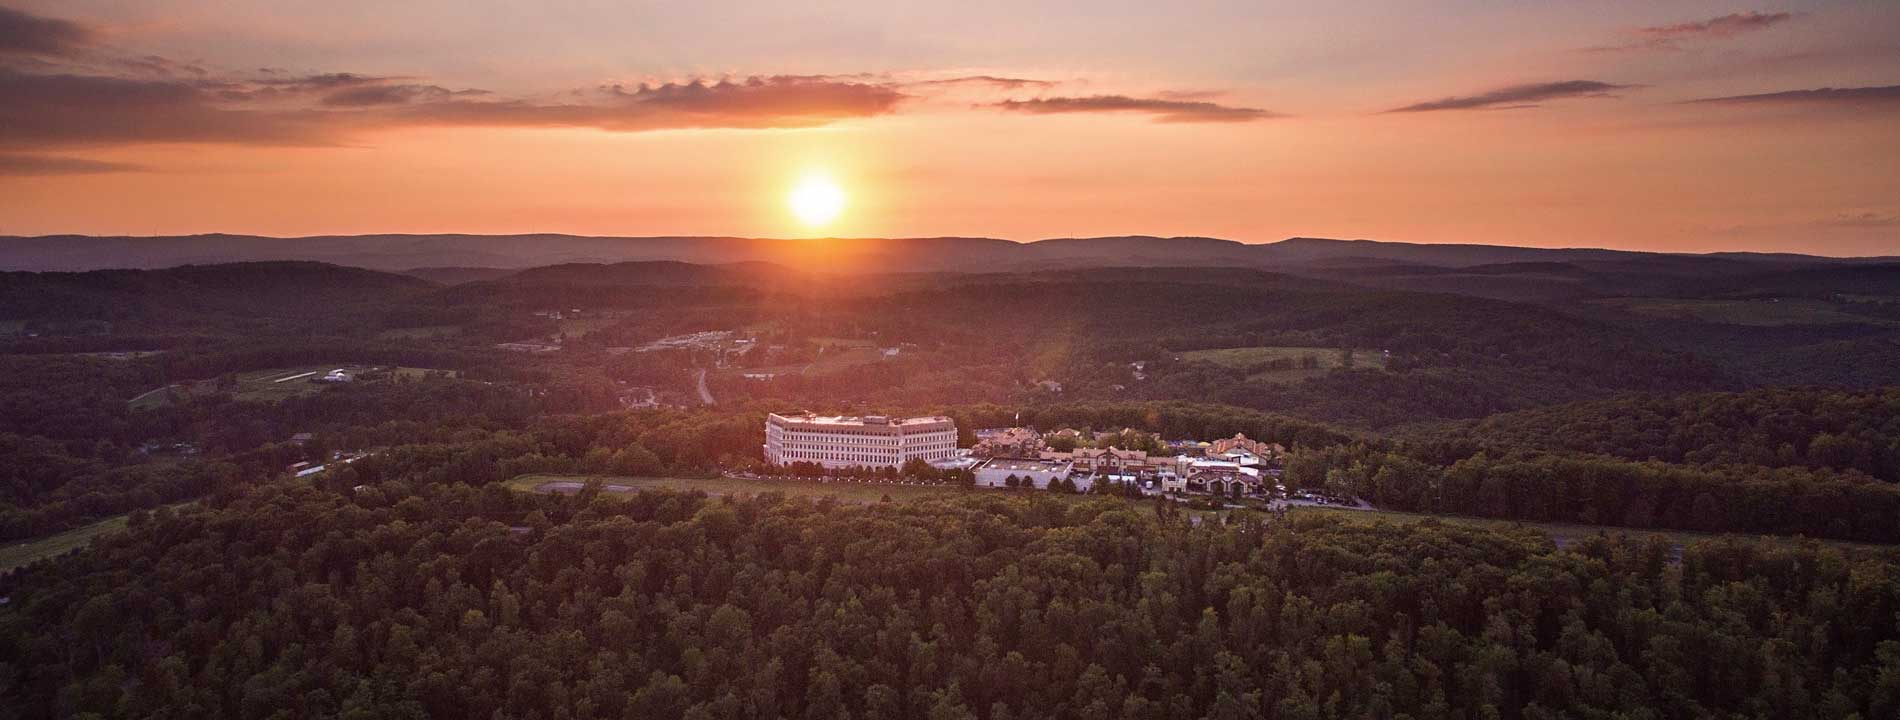 An aerial view of Nemacolin Woodlands Resort.